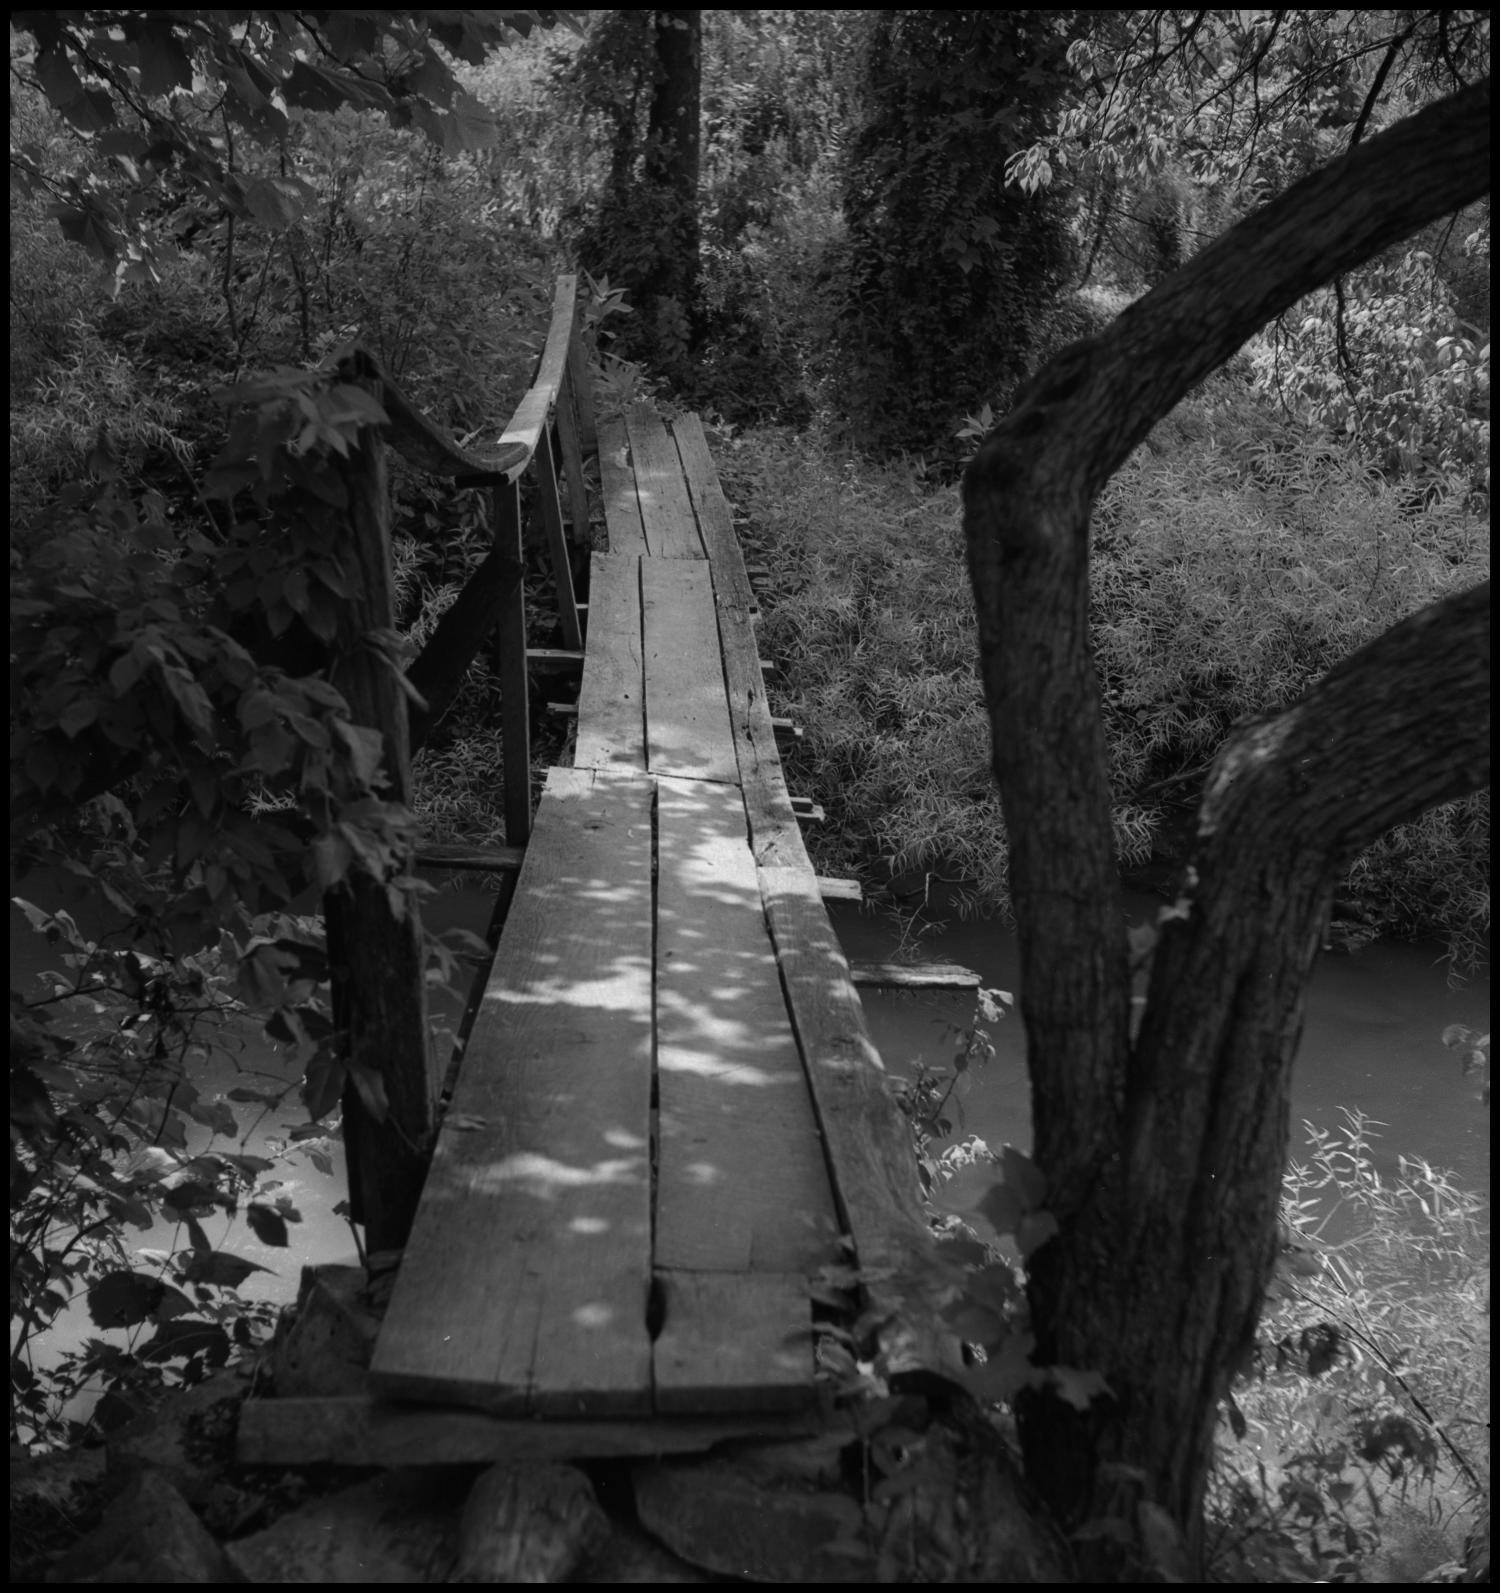 [Wood bridge], Photograph of a small wooden bridge. In the image, the bridge has safety bars on only one side over a small tree covered creek.,